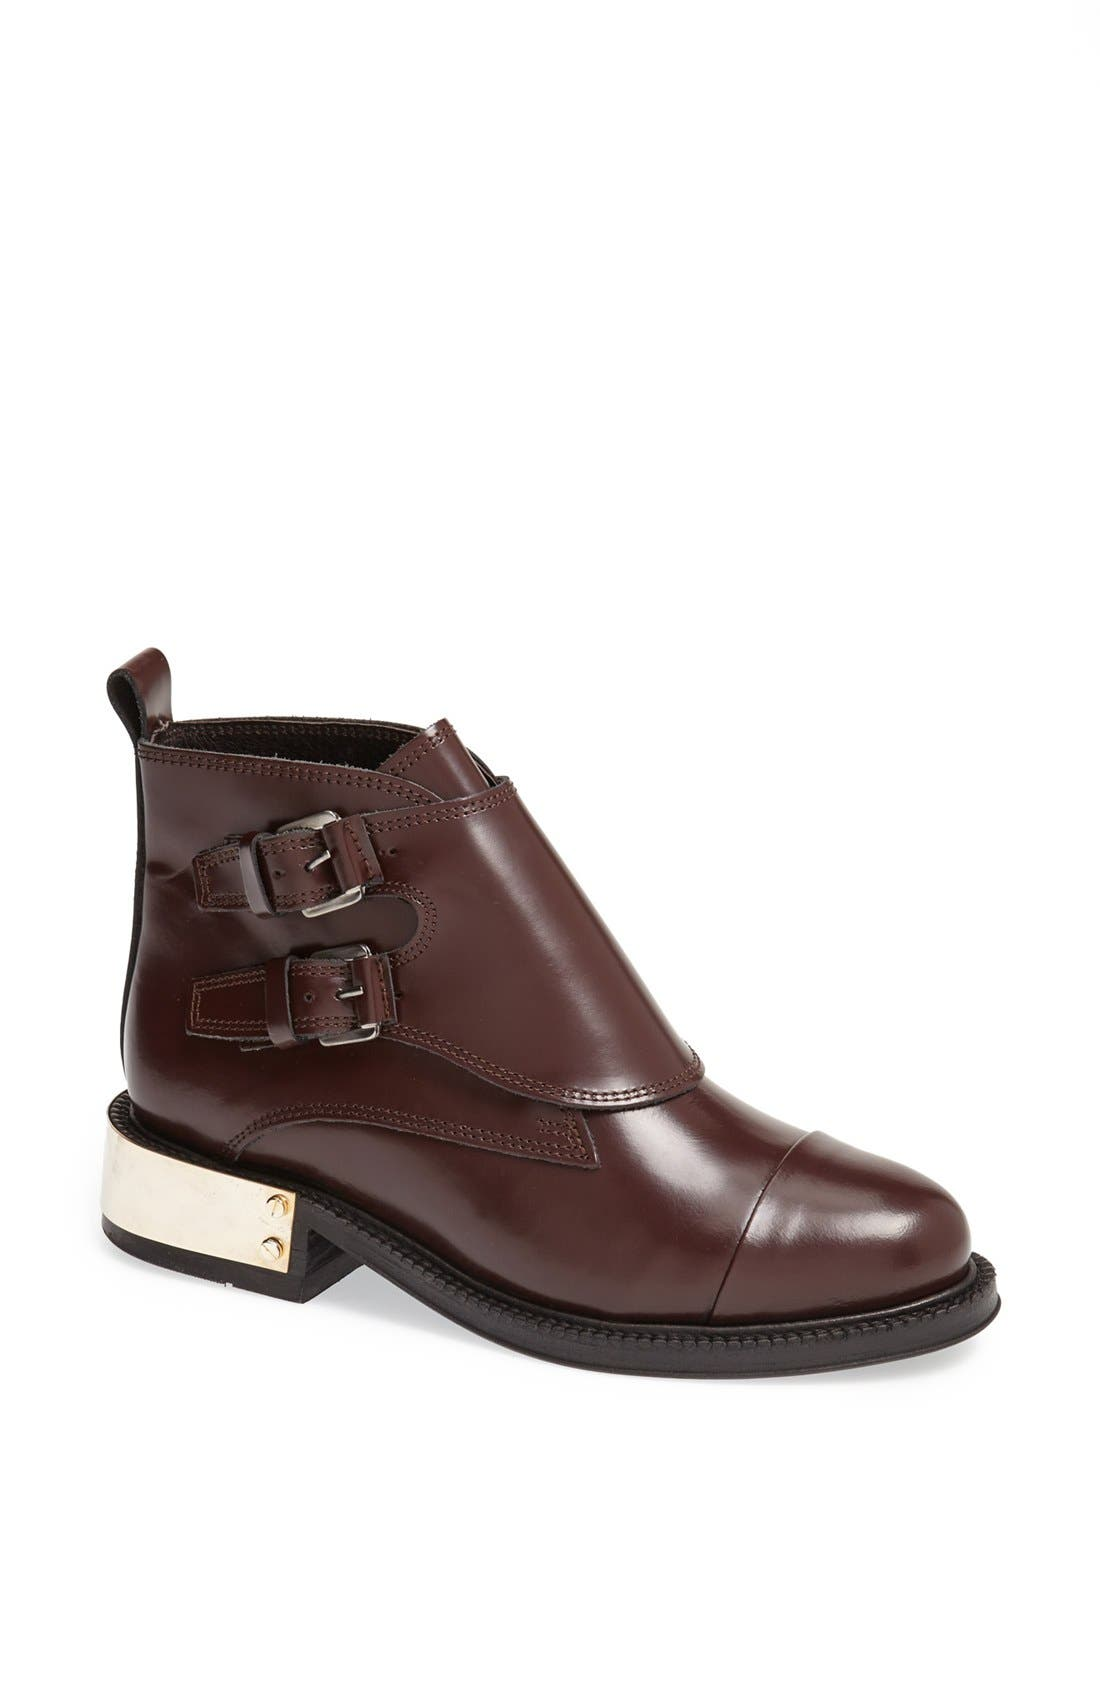 Alternate Image 1 Selected - Topshop 'Pertora' Leather Monk Strap Boot